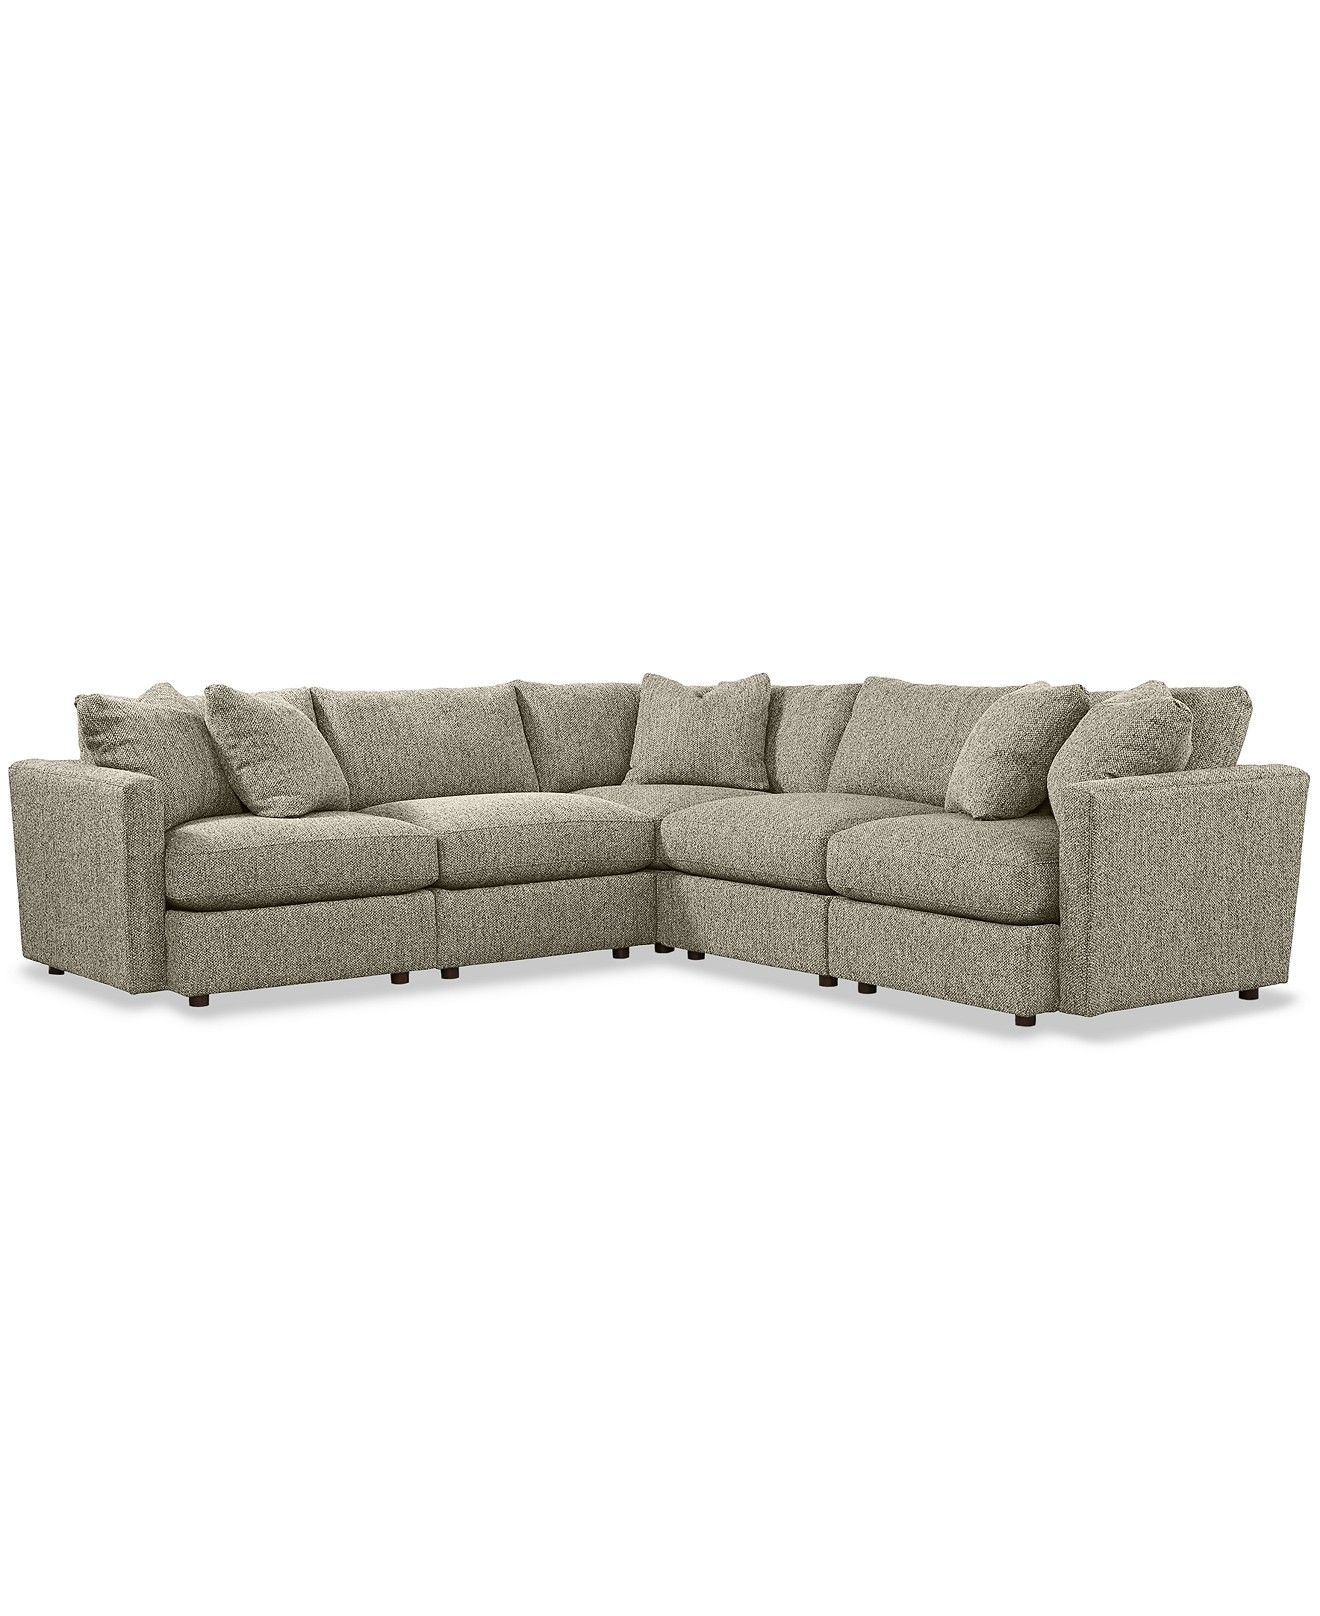 Clinton Fabric 5 Piece Sectional with 2 Armless Chairs Created